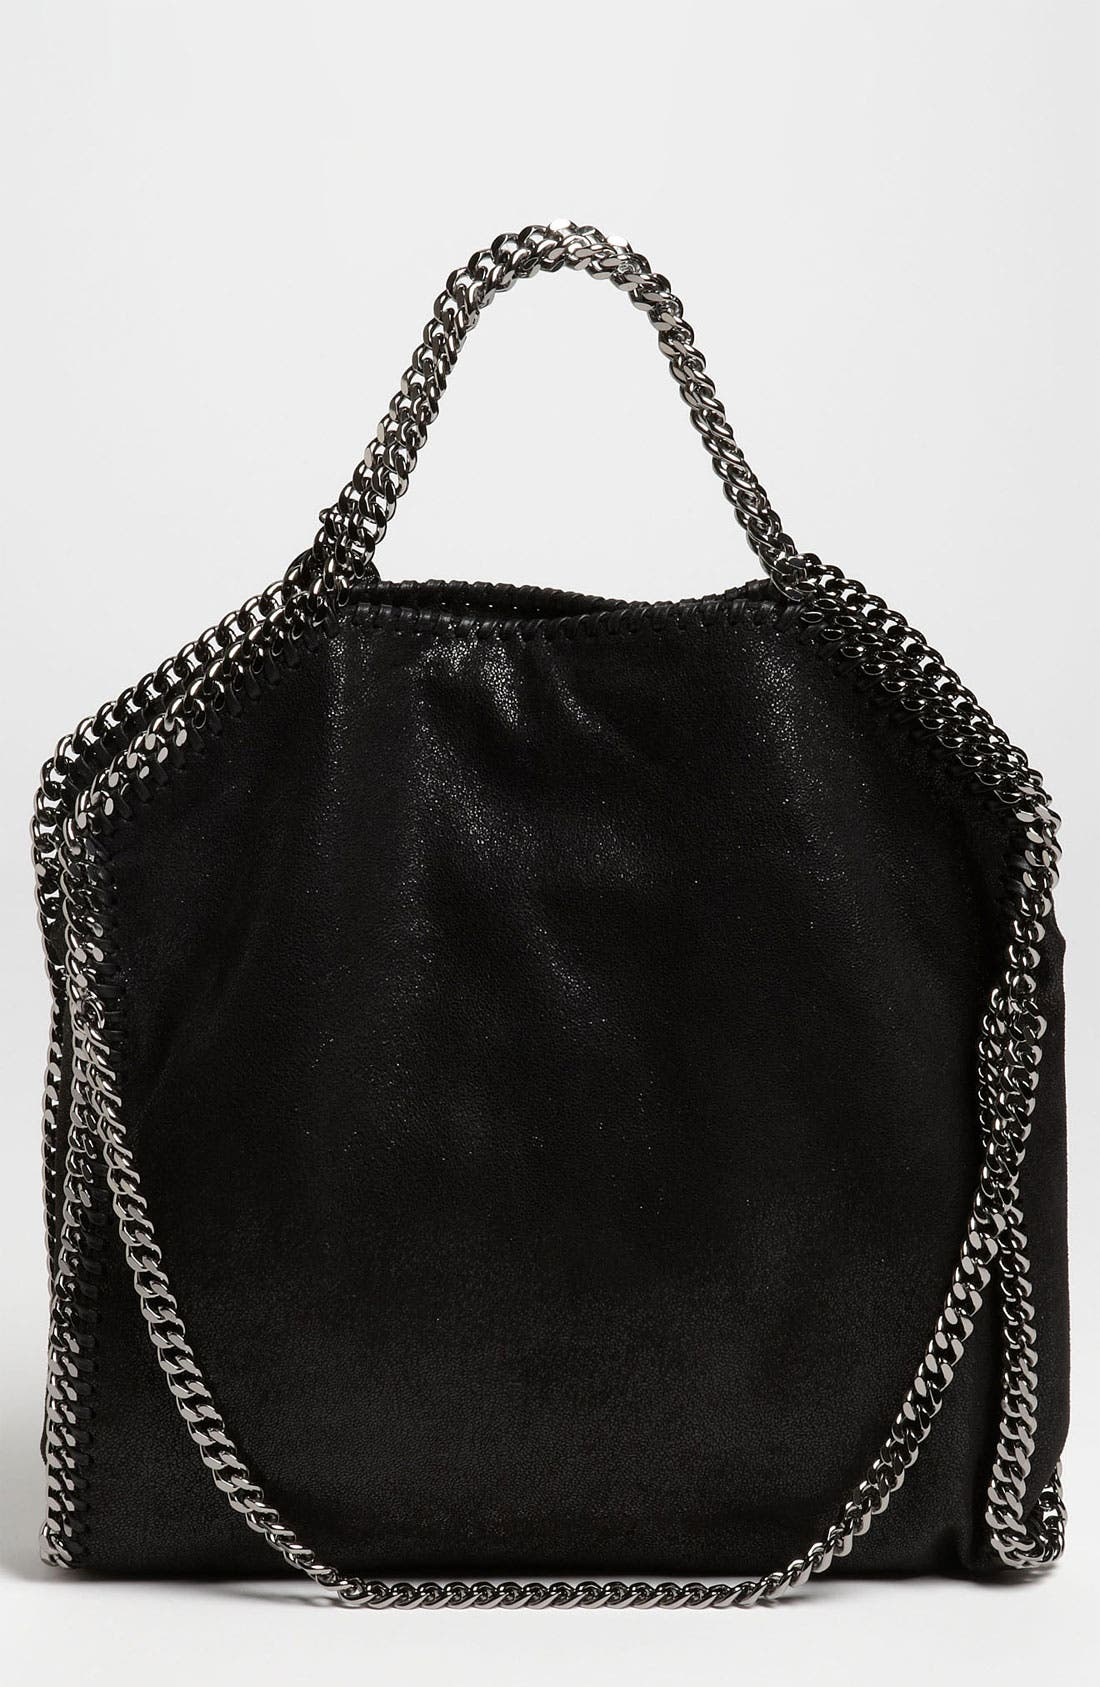 Stella McCartney 'Falabella - Shaggy Deer' Faux Leather Foldover Tote